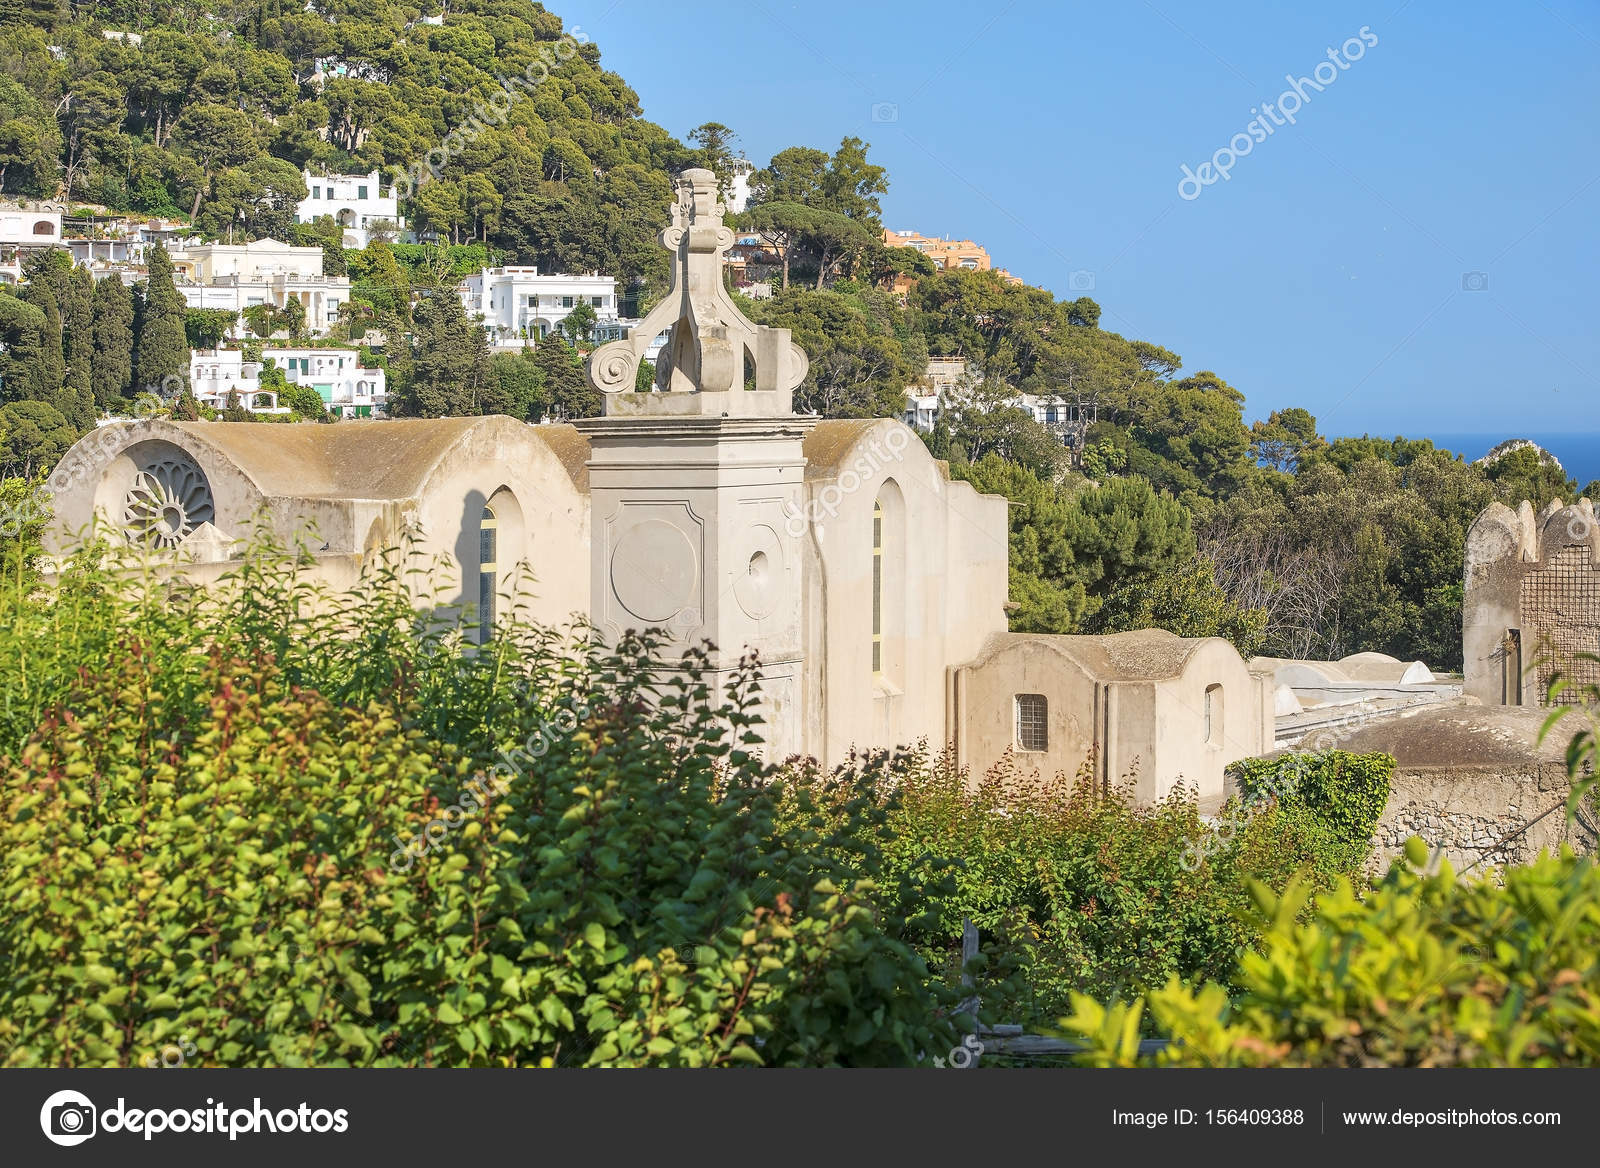 certosa di san giacomo kartause capri italien stockfoto irisphoto11 156409388. Black Bedroom Furniture Sets. Home Design Ideas